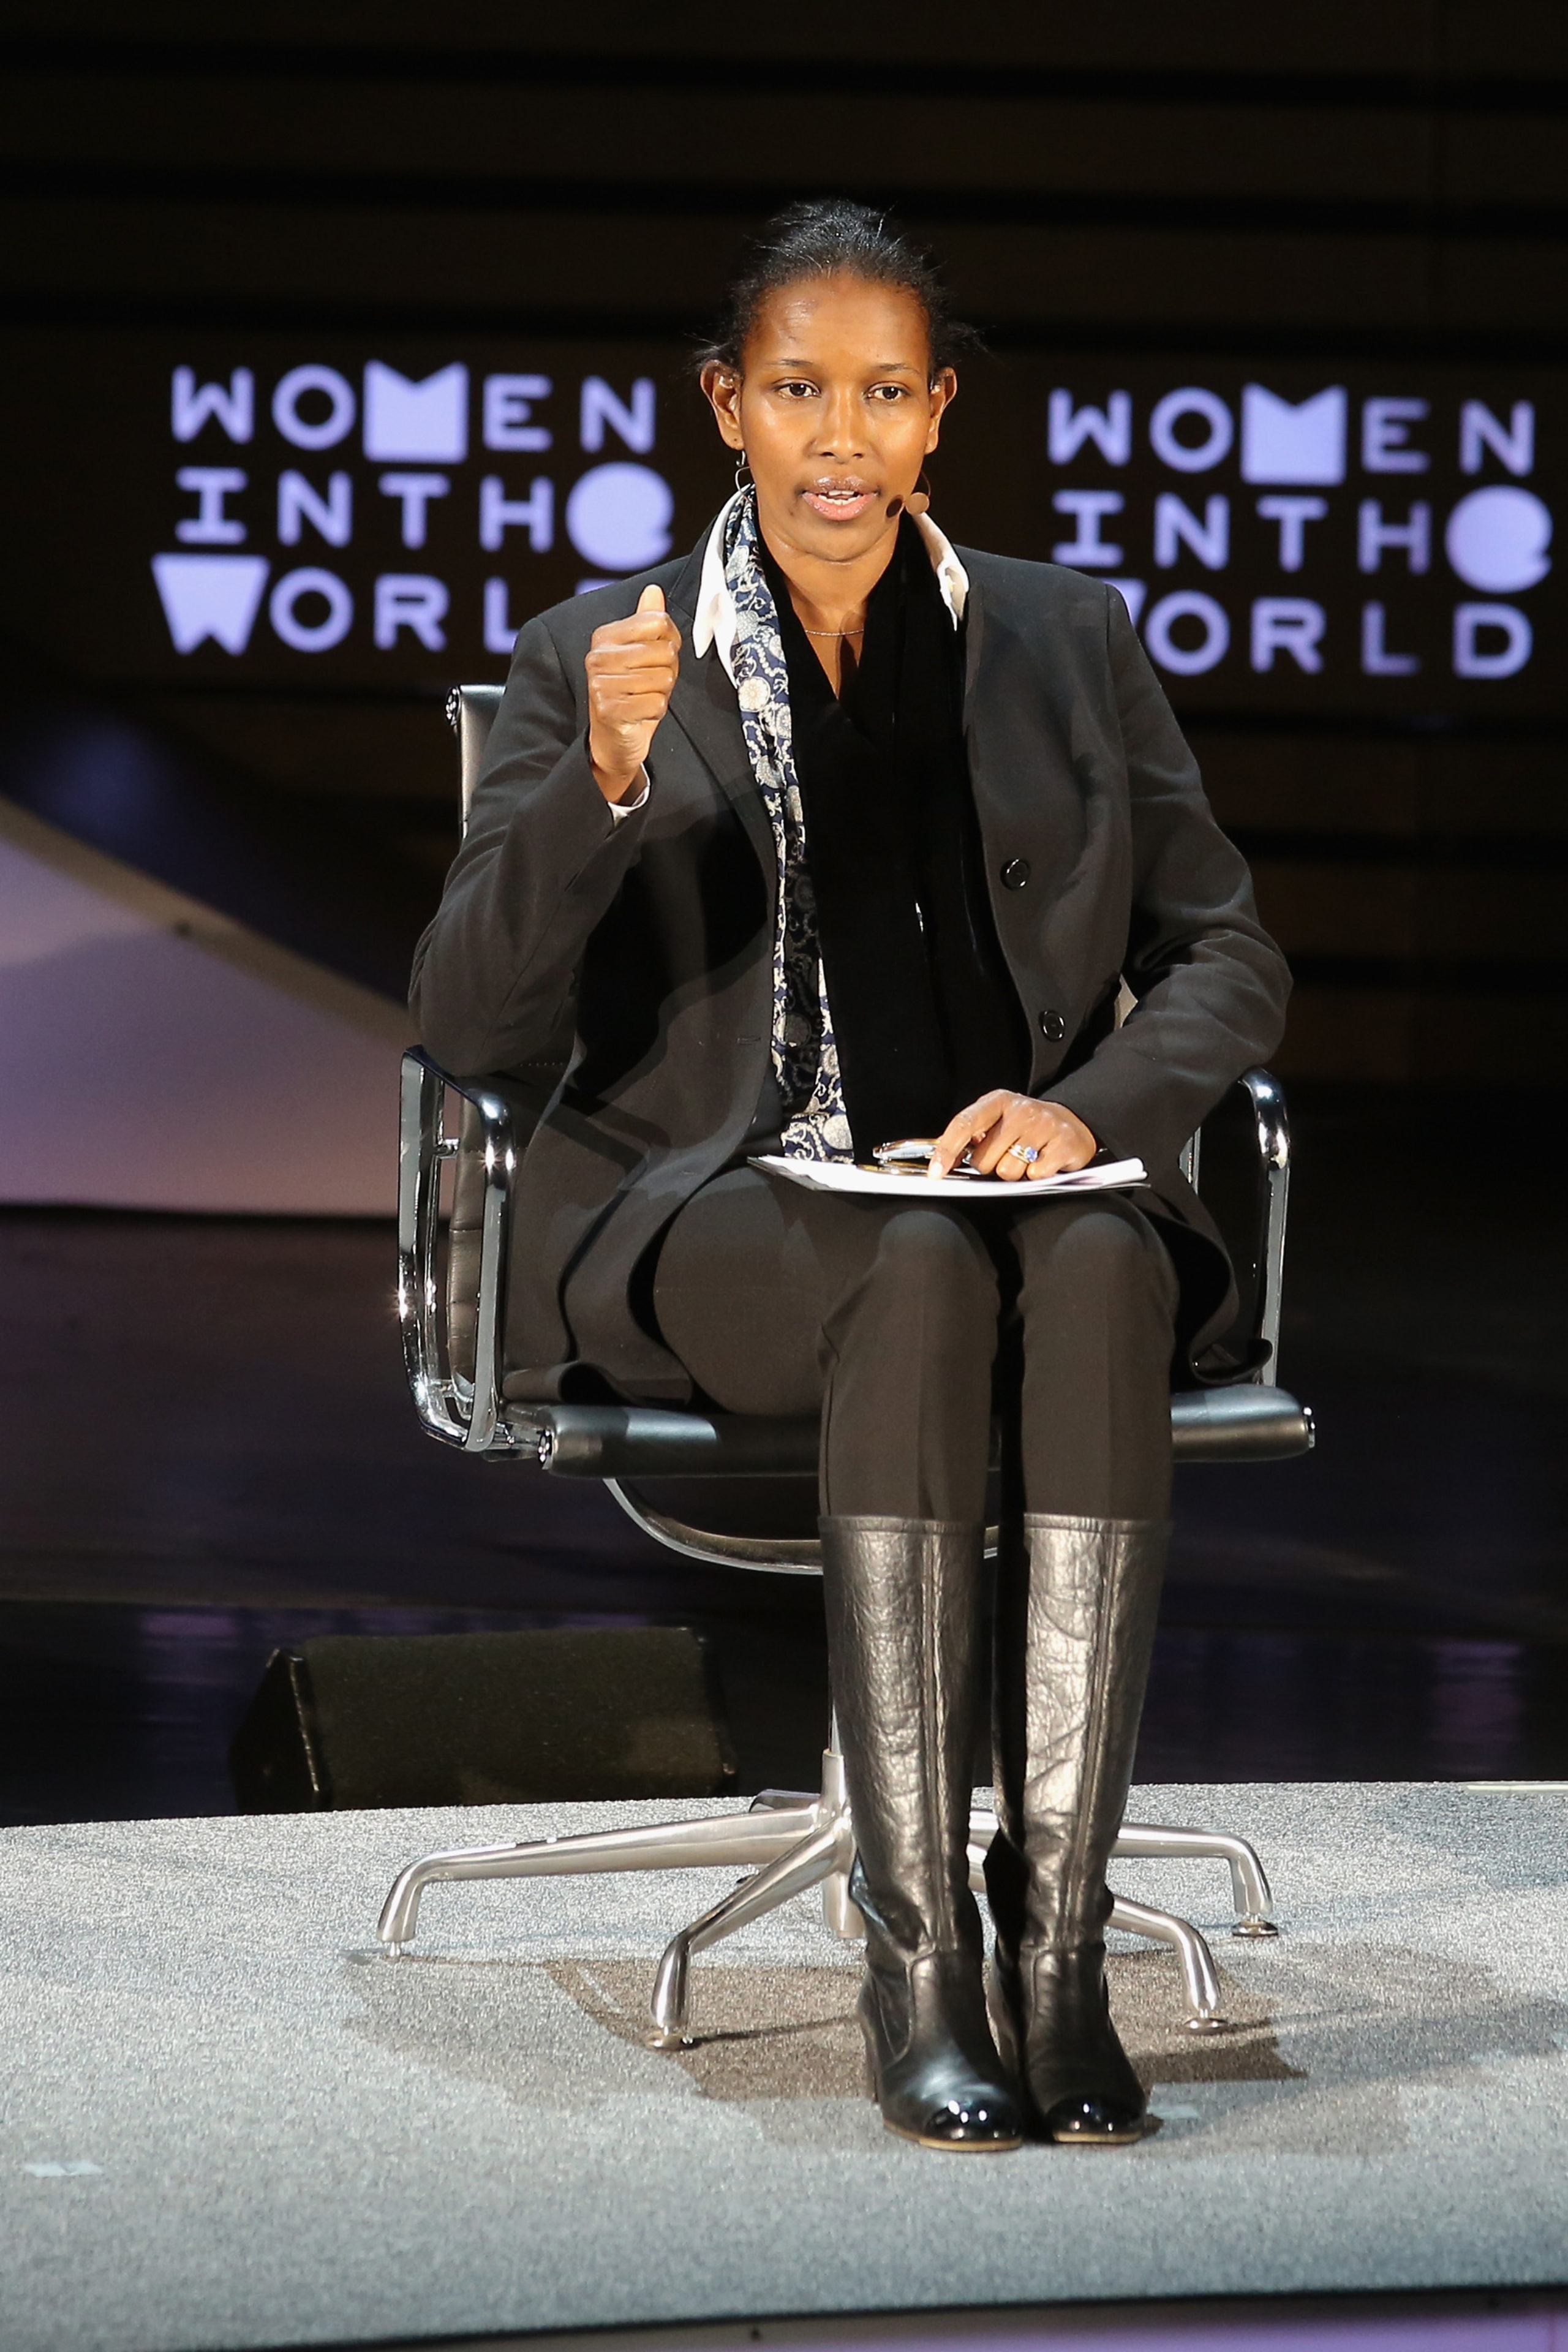 Ayaan Hirsi Ali speaks onstage at What is the Future for Women in Islam during Tina Brown's 7th Annual Women In The World Summit at David H. Koch Theater at Lincoln Center on April 7, 2016 in New York City. (Photo by Jemal Countess/Getty Images)